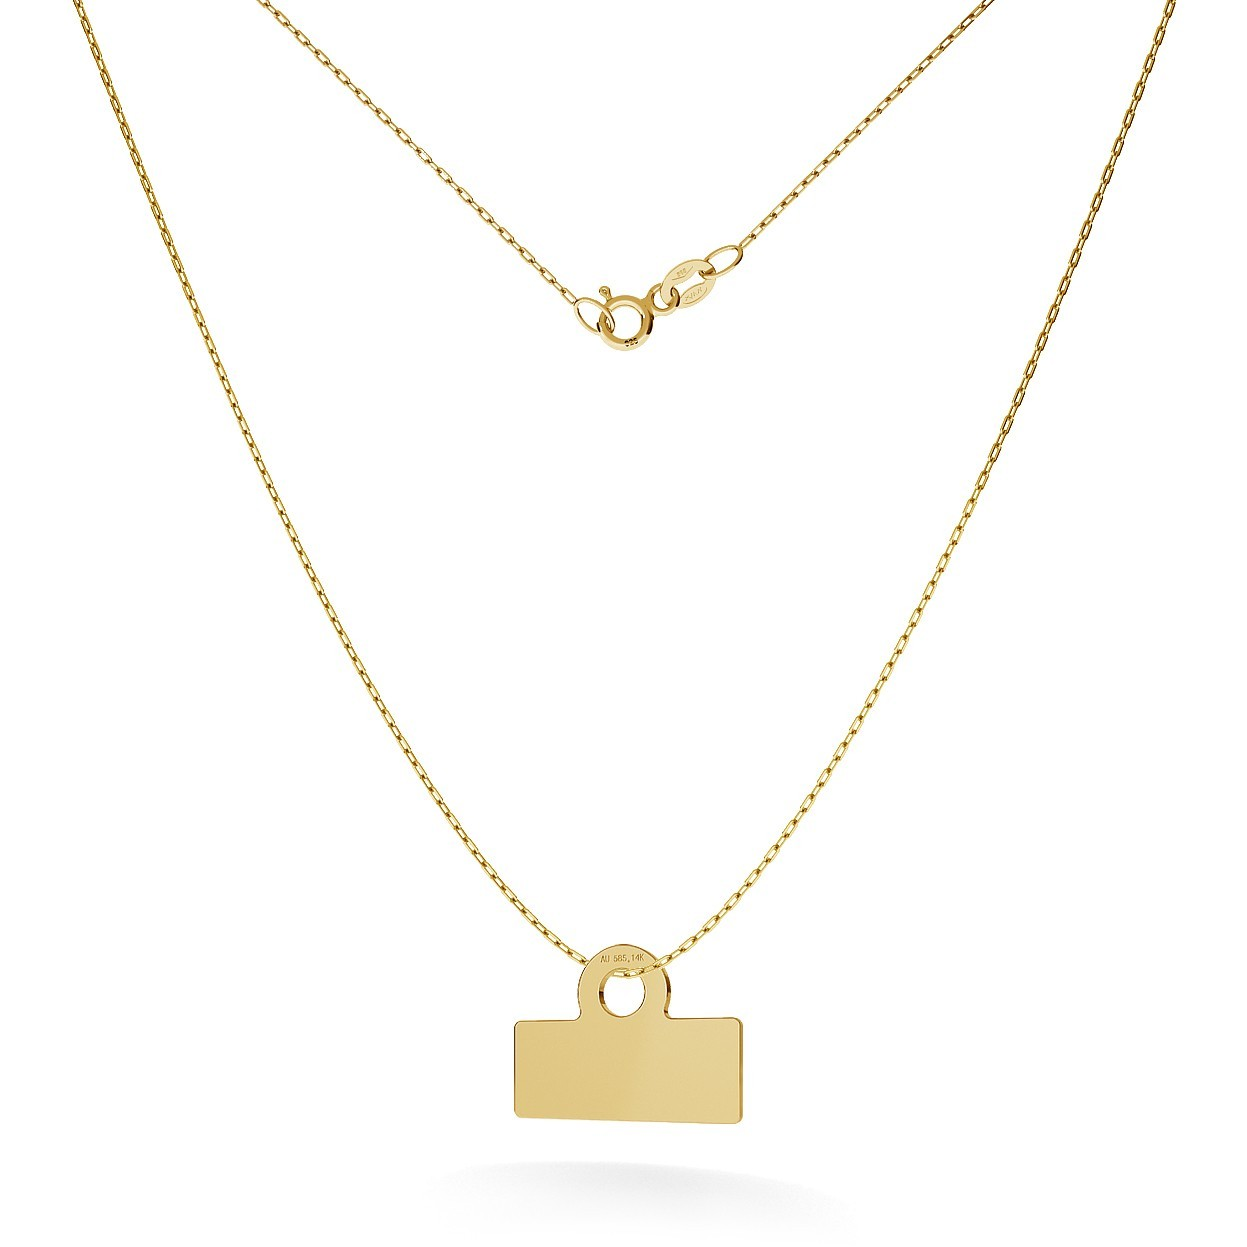 GOLD RECTANGLE NECKLACE 14K, MODEL 17